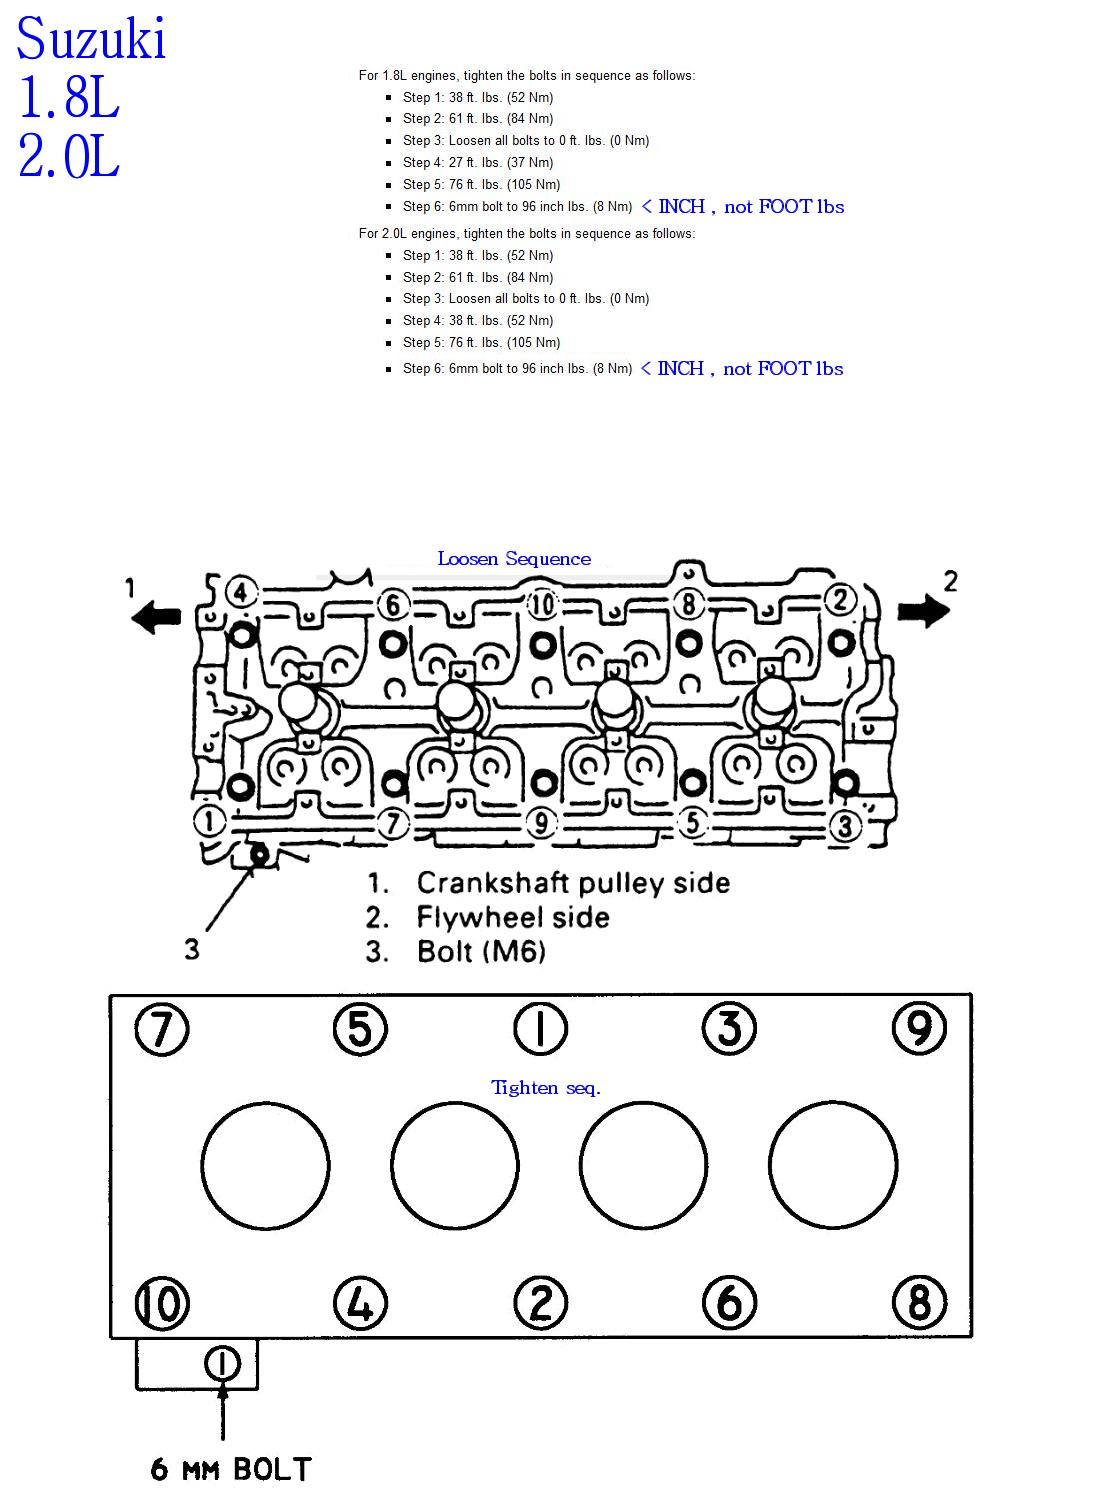 18 Liter Suzuki Sidekick Sport Secrets Or One Point Eight J18 M6 Fuse Diagram Head Torque Sequence And Spec 20l